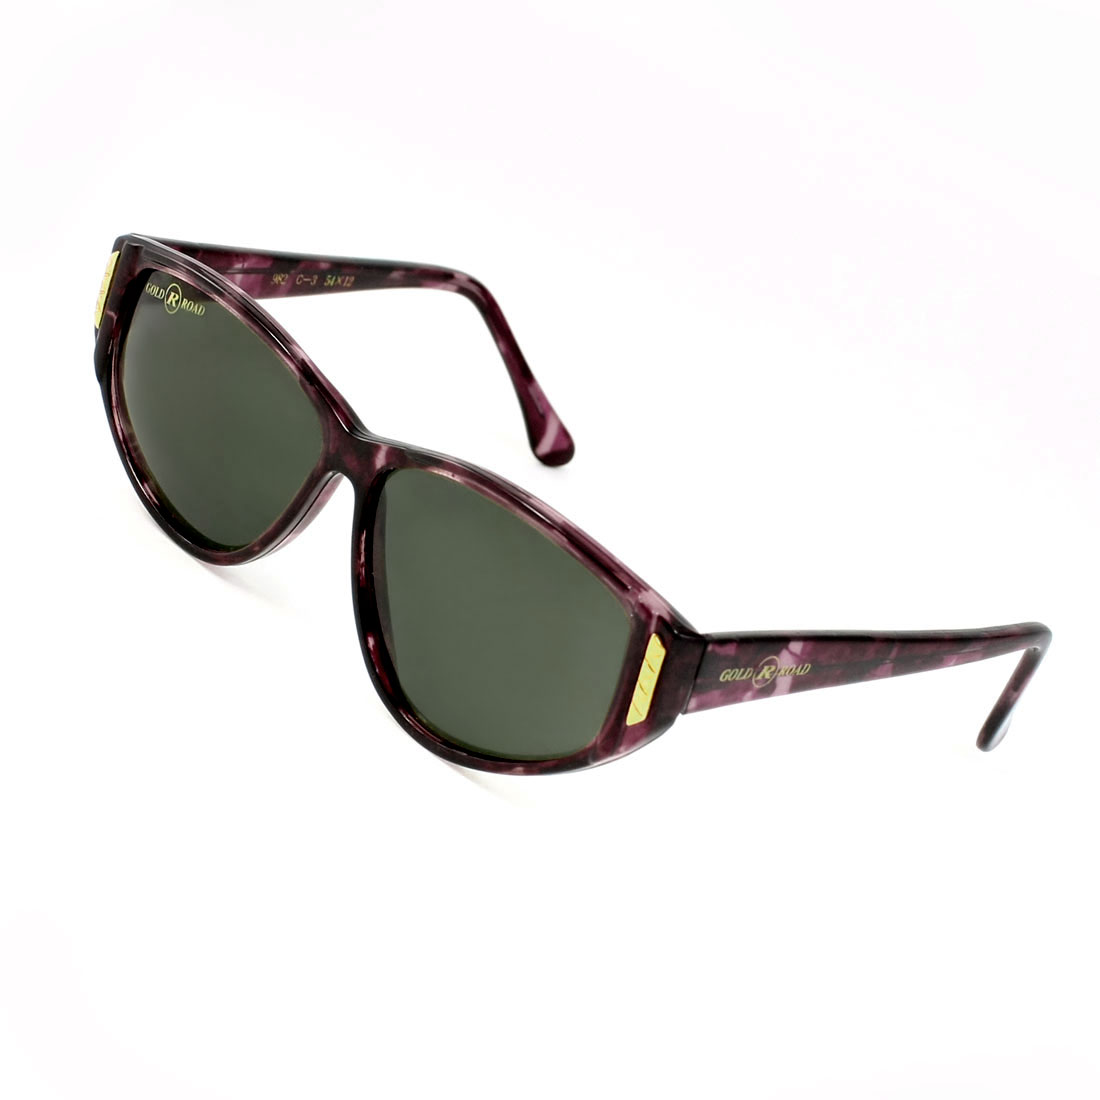 Waterdrop Lens Plastic Burgundy Full Rim Frame Sunglasses Glasses for Ladies